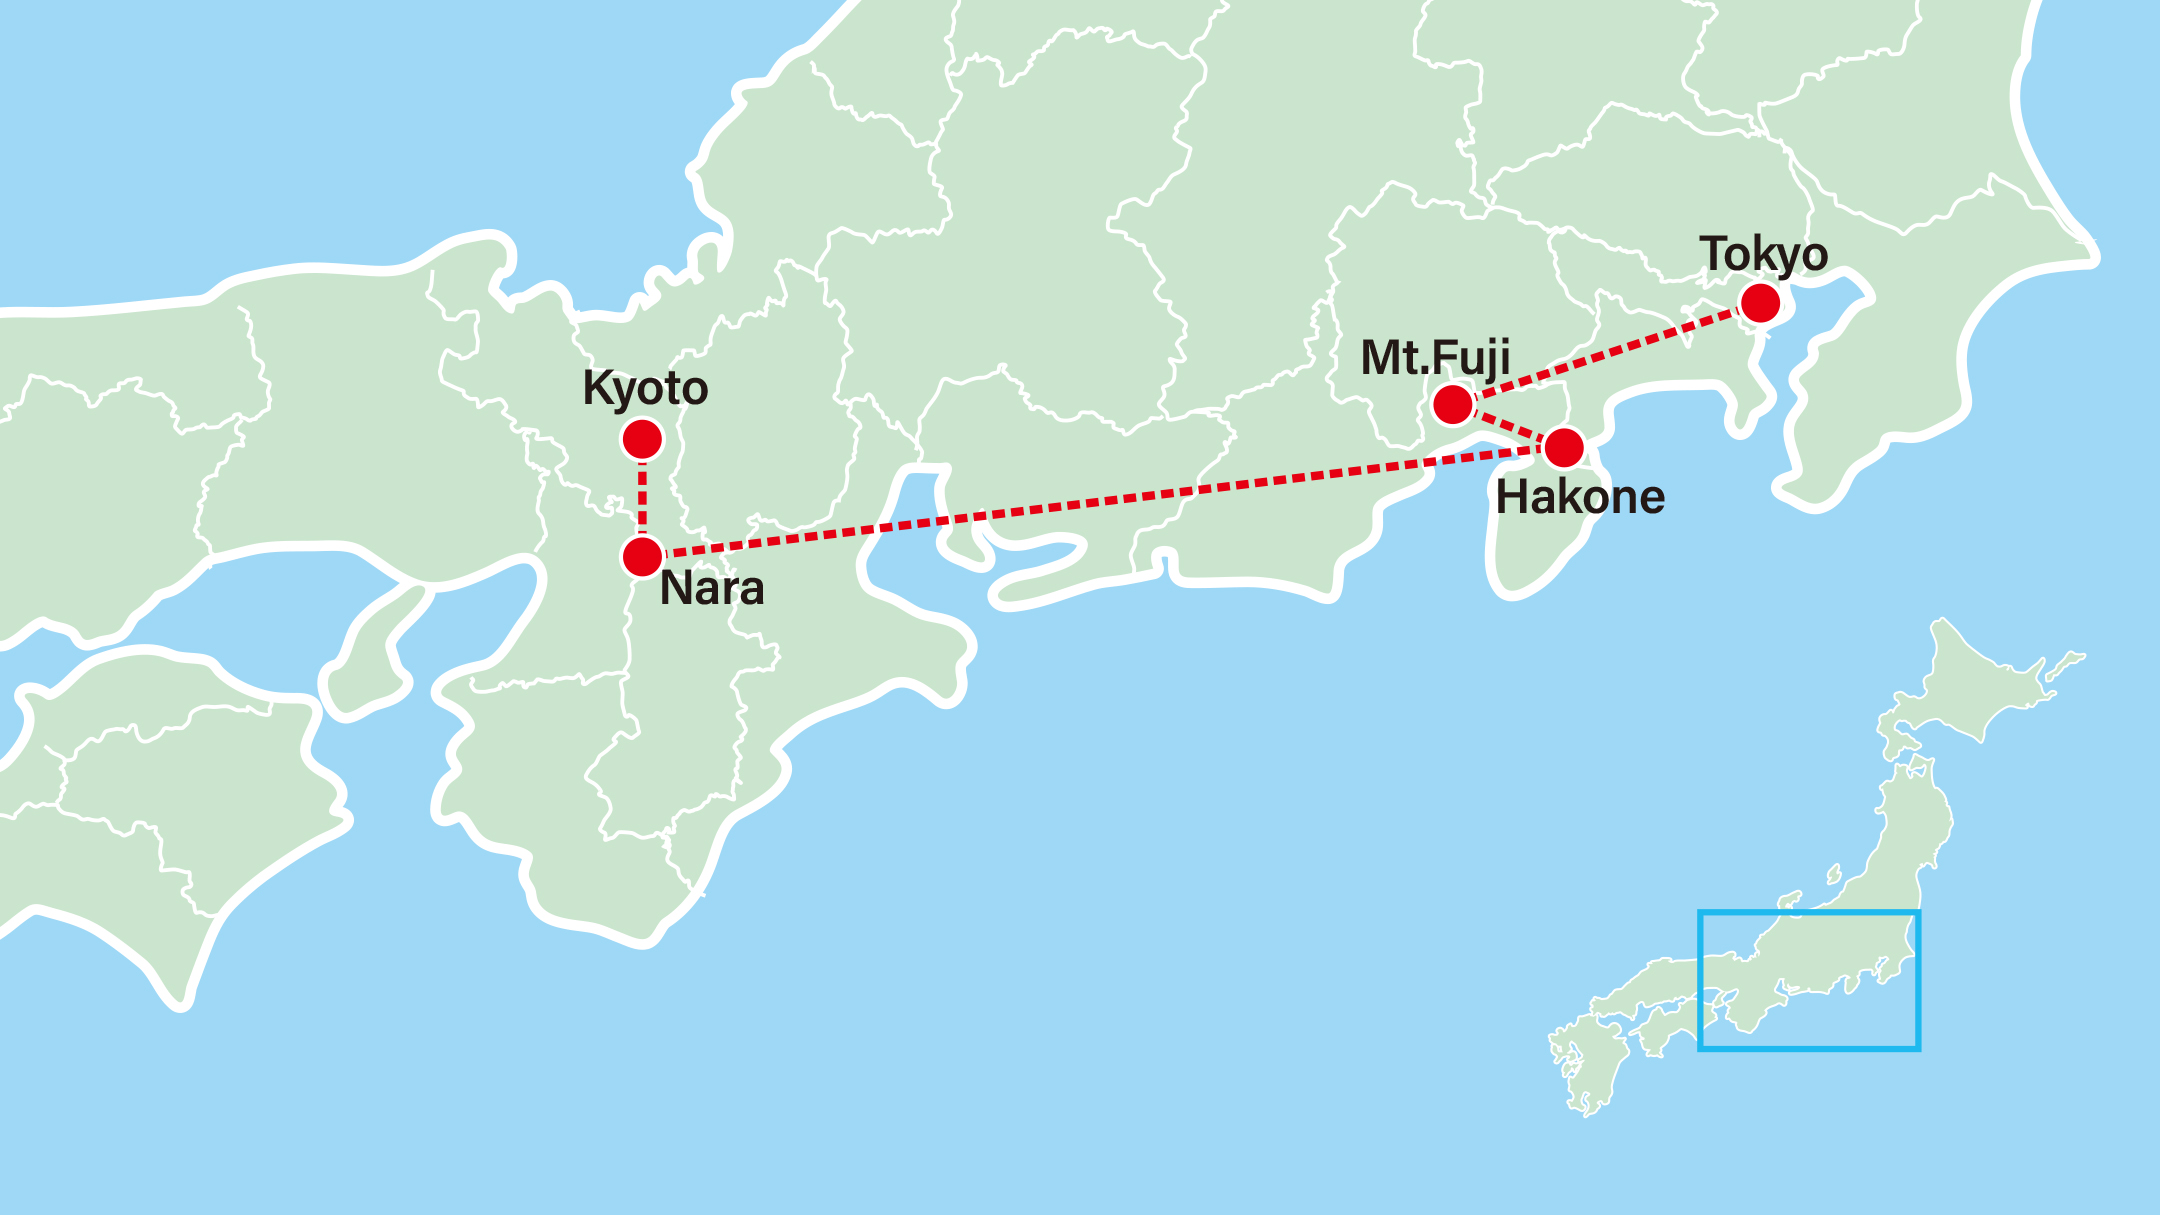 Golden Route of Japan 8 Days Anime-Kyoto-Nara-Mt Fuji-Hakone-Tokyo